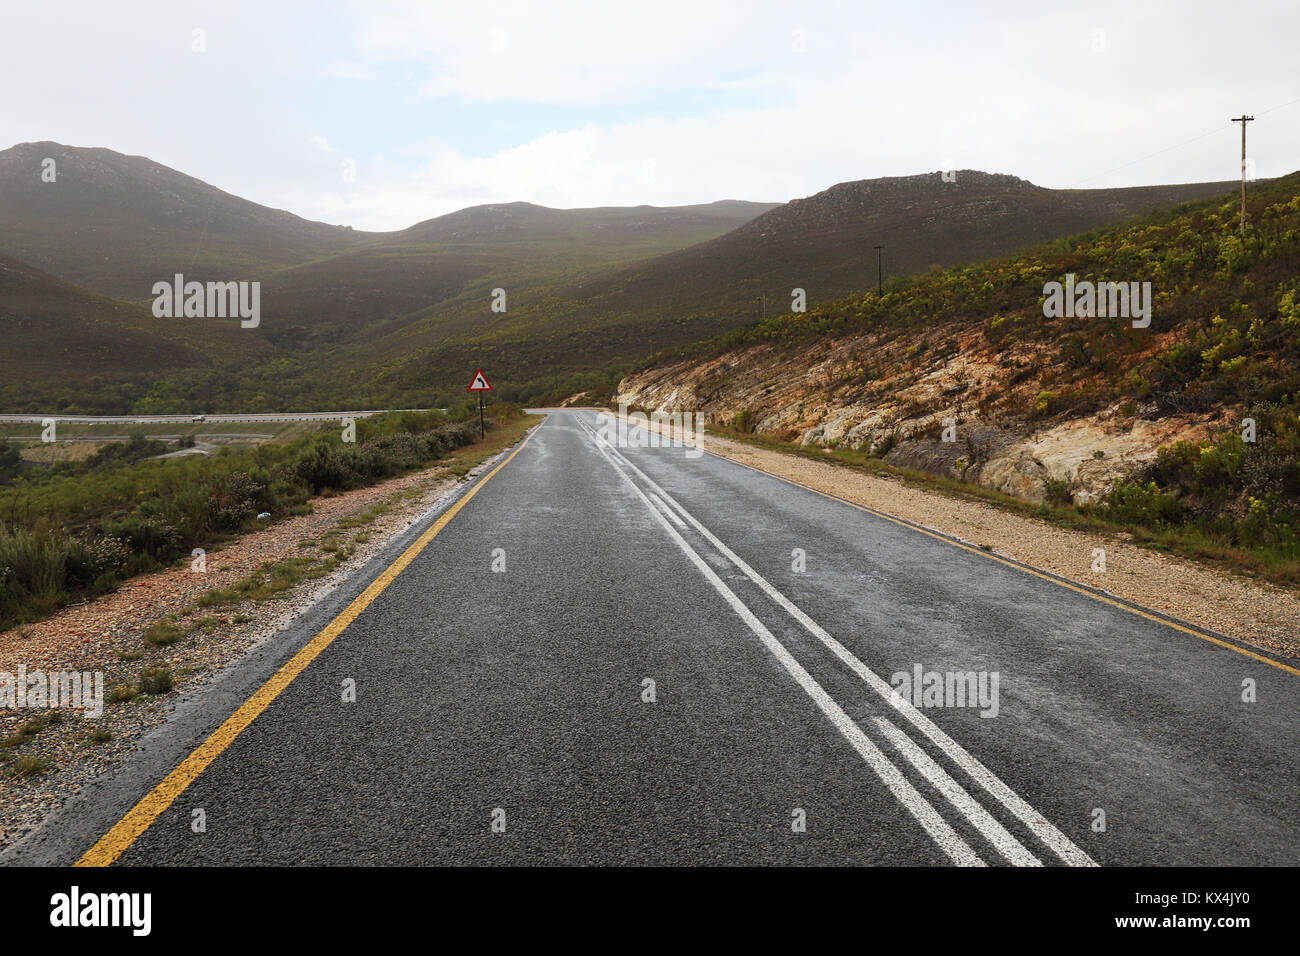 On the Road, Garden Route, South Africa Stock Photo